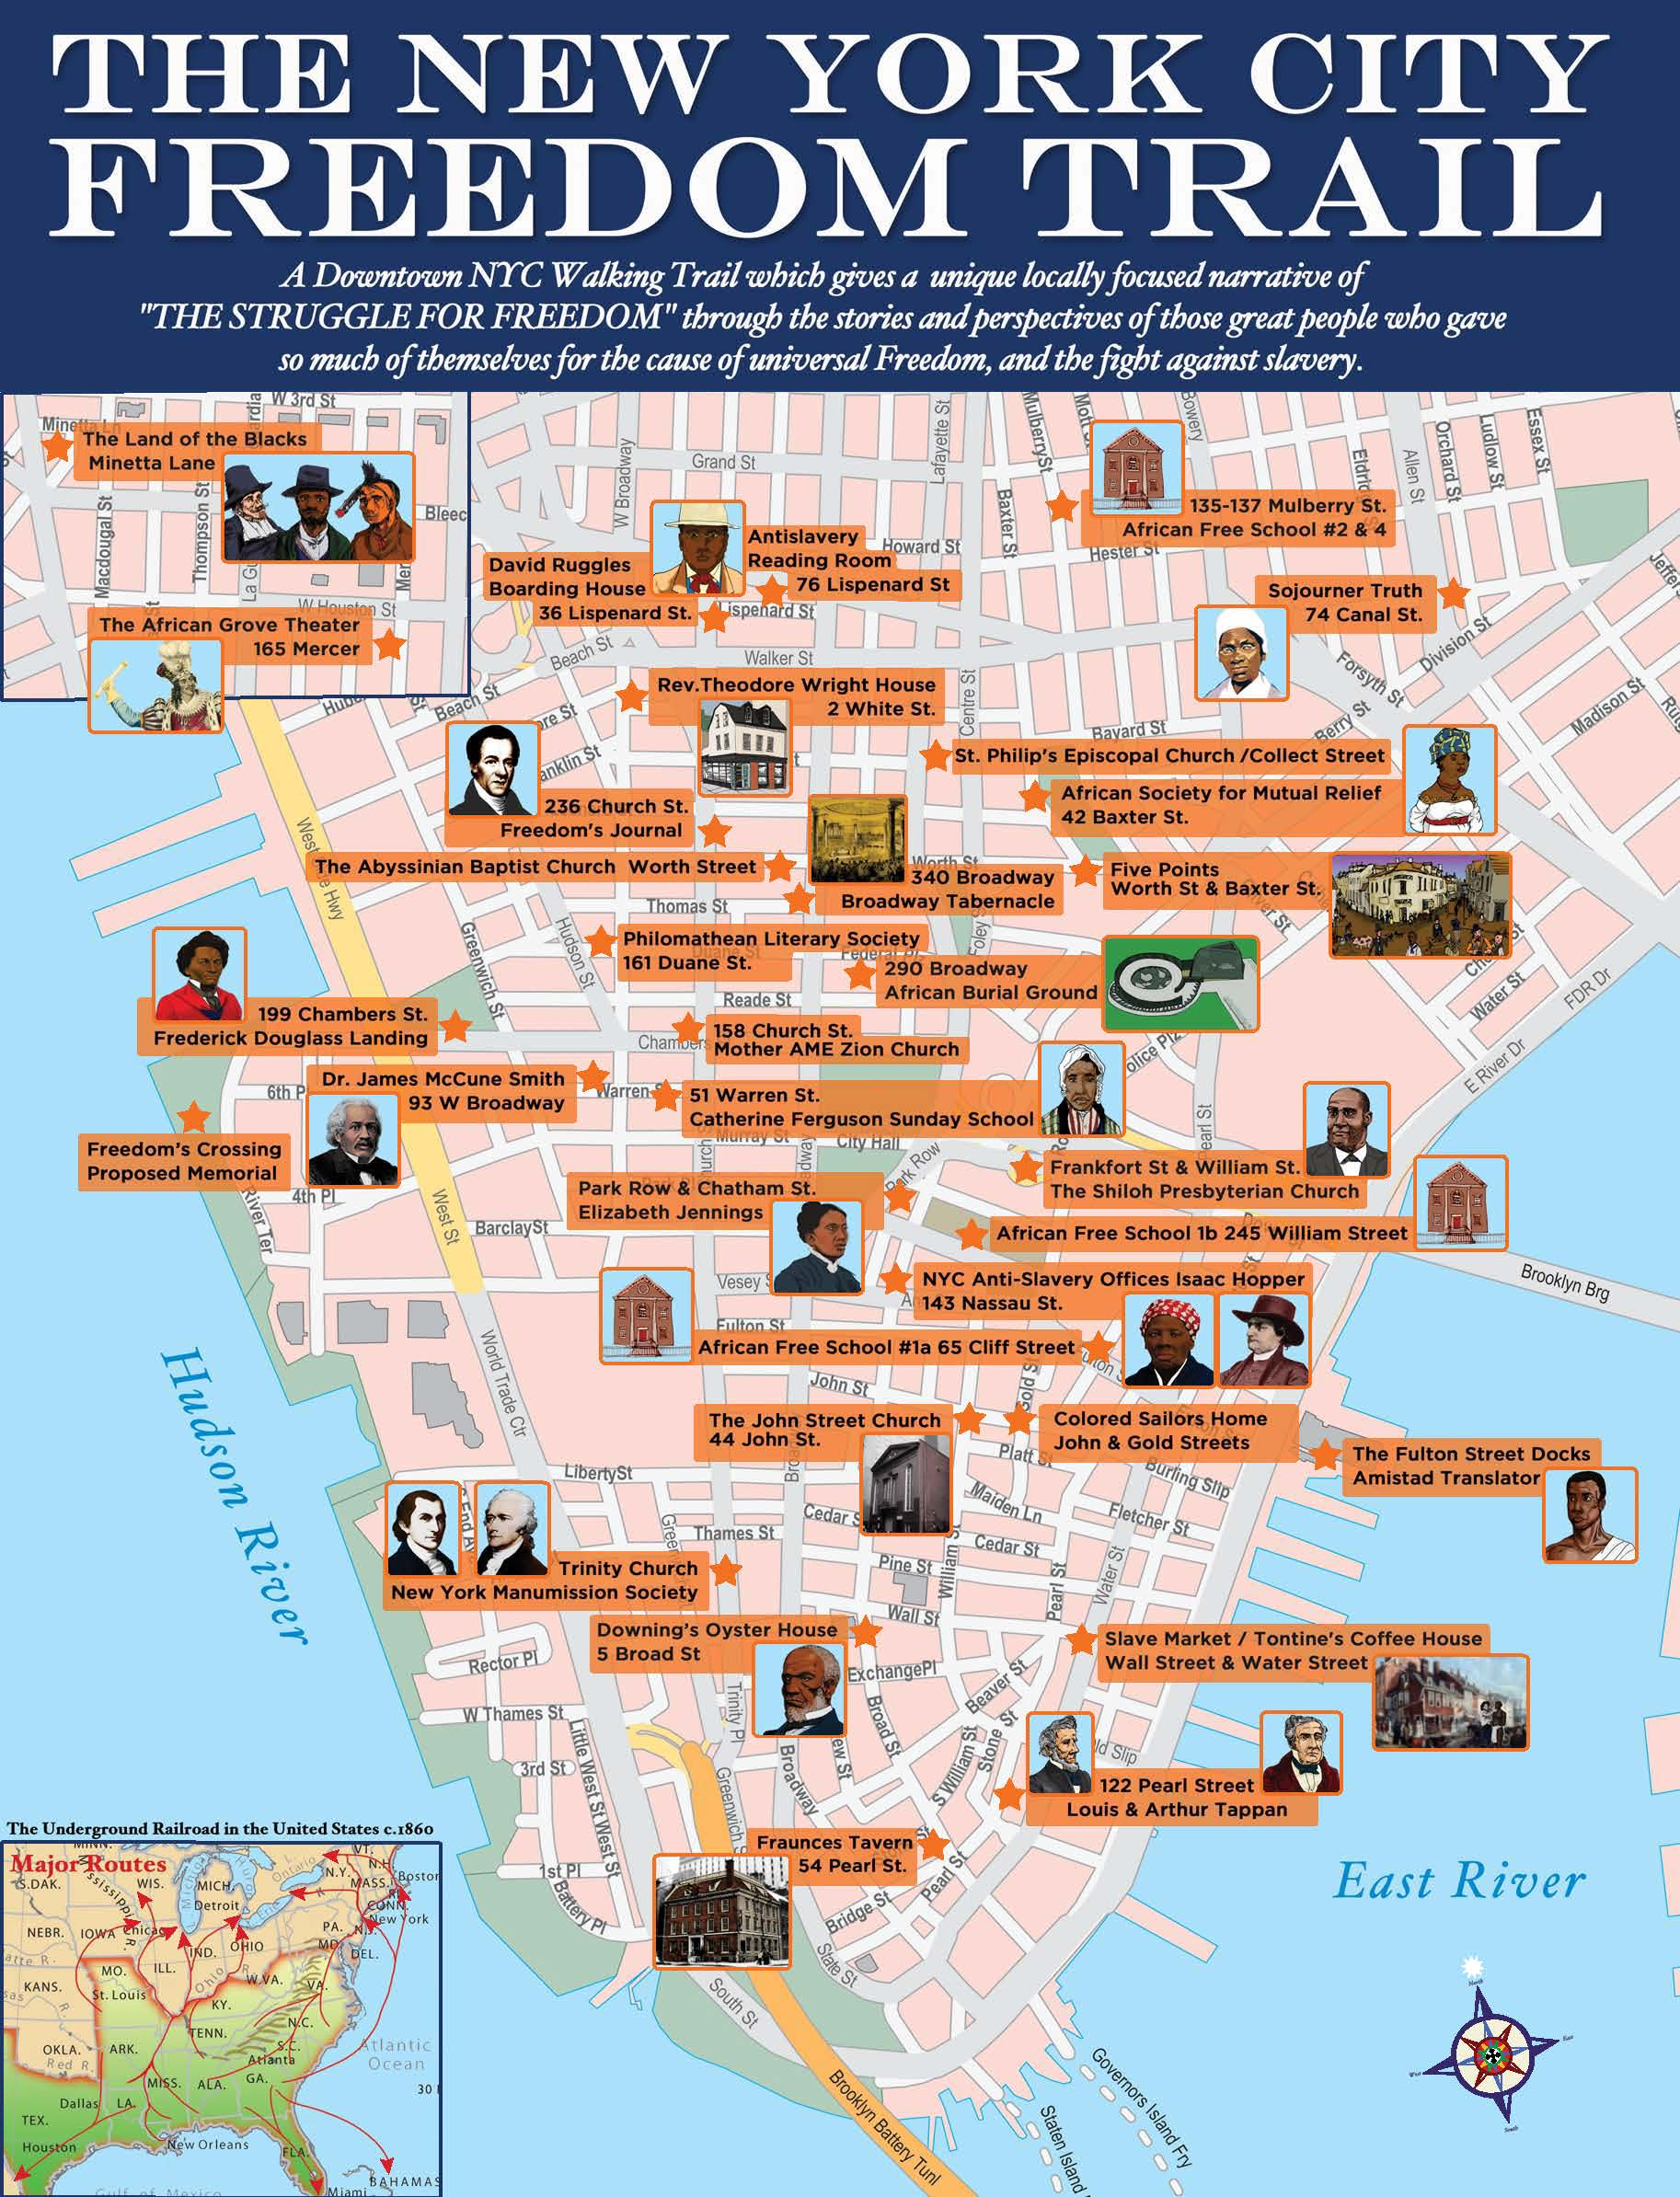 A walking tour and map of sites and people who helped so many escape the bonds of slavery, in pursuit of human dignity, and the right to make their own way in life.